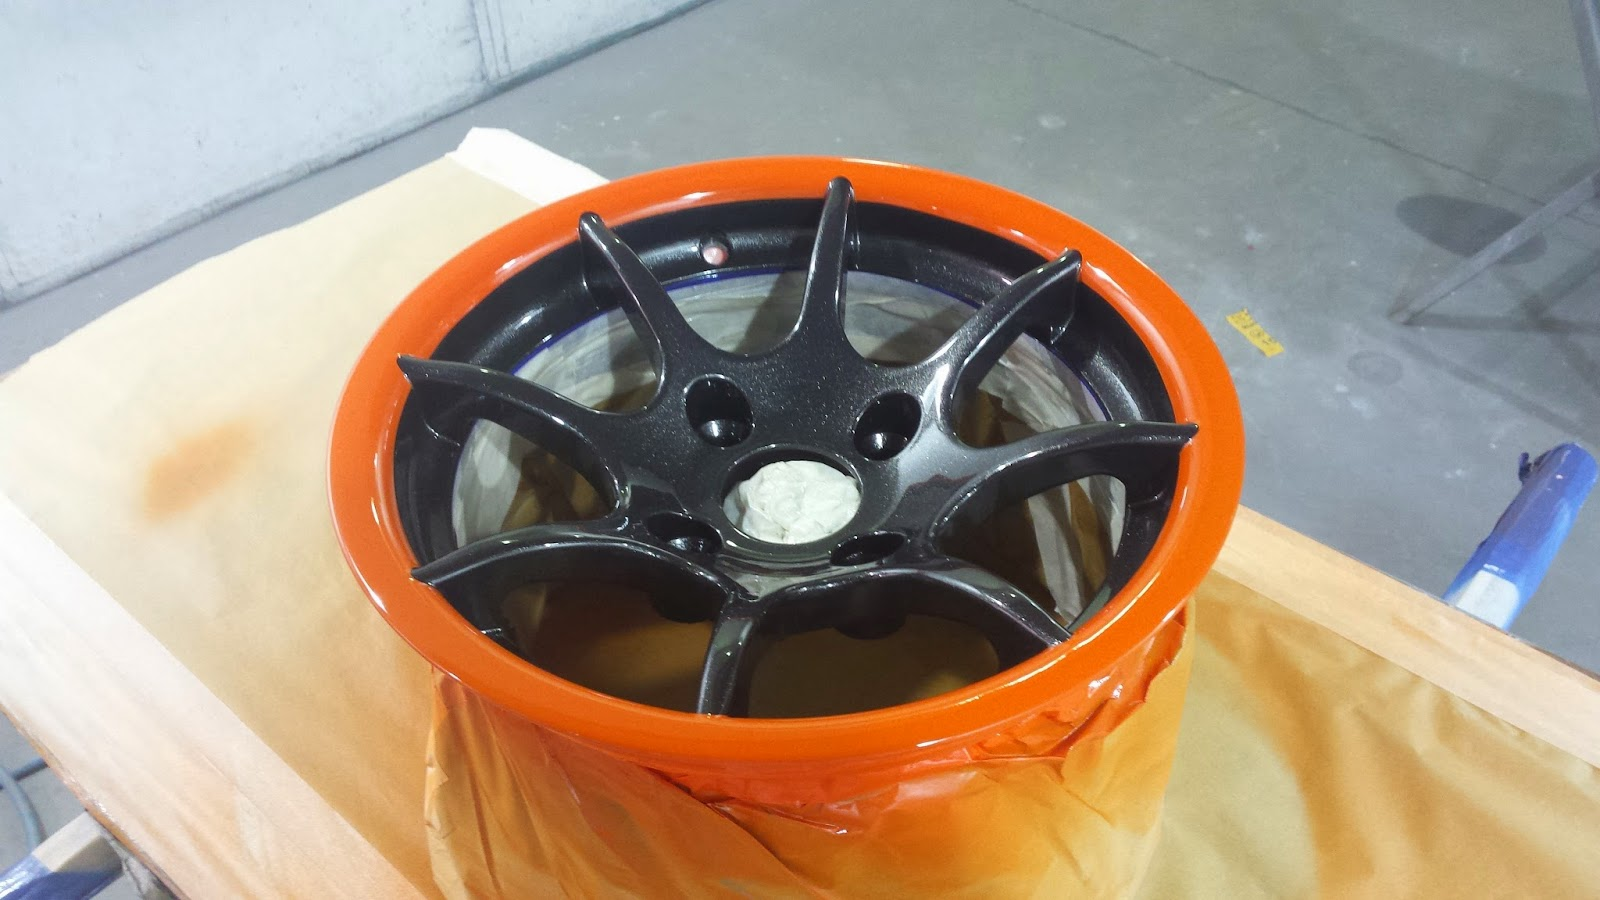 Wheel finished off with a couple of clear coats